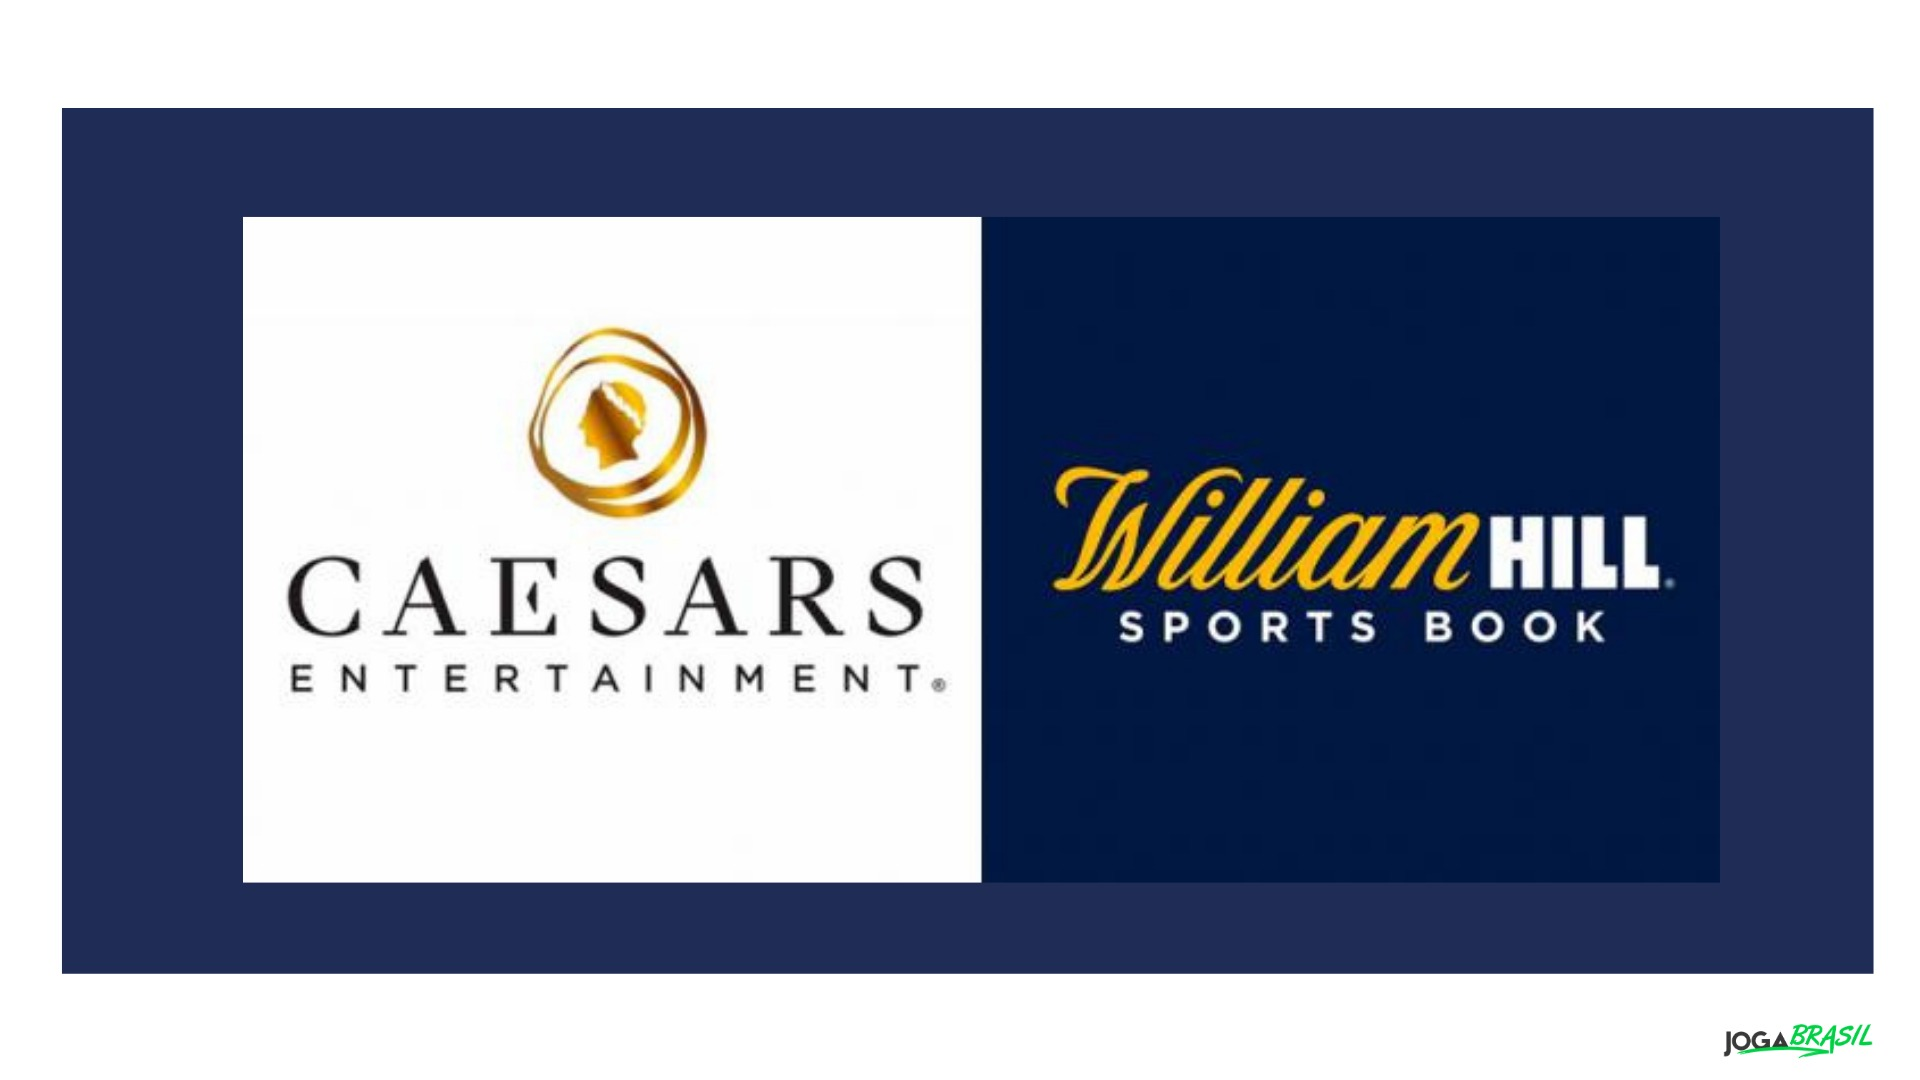 Caesars pretende adquirir operações da William Hill